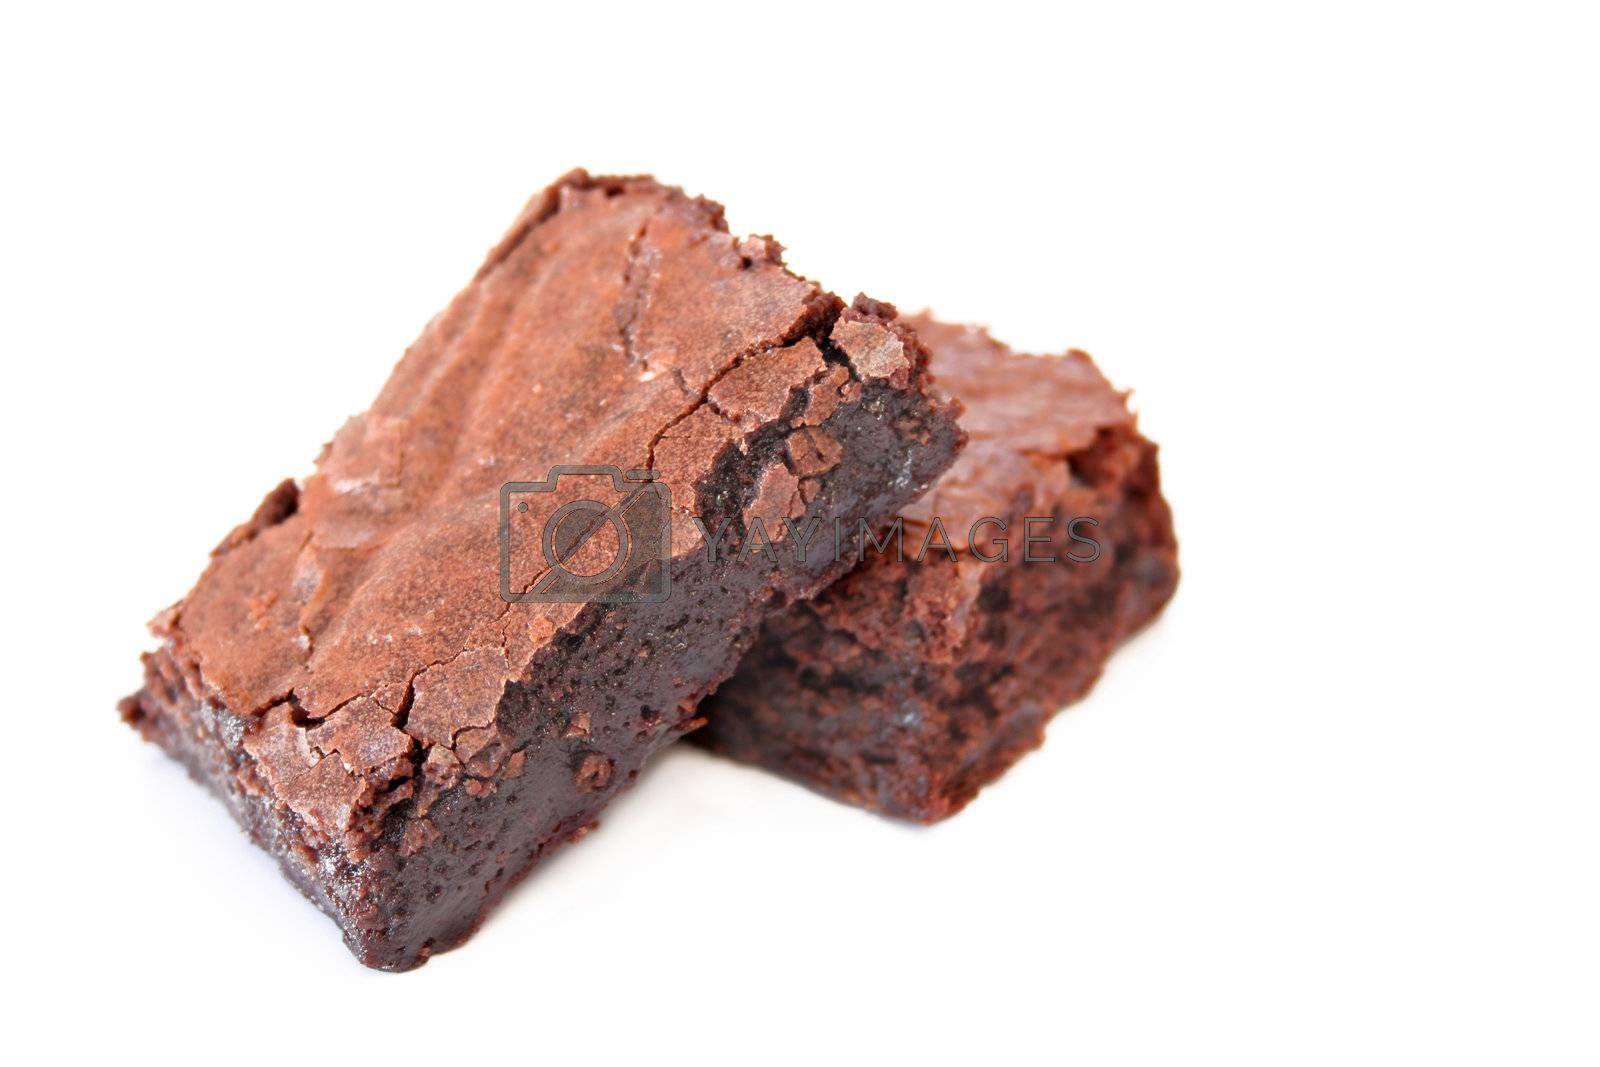 Fresh baked brownies with a selective focus and shallow depth of field. Copy space is available.